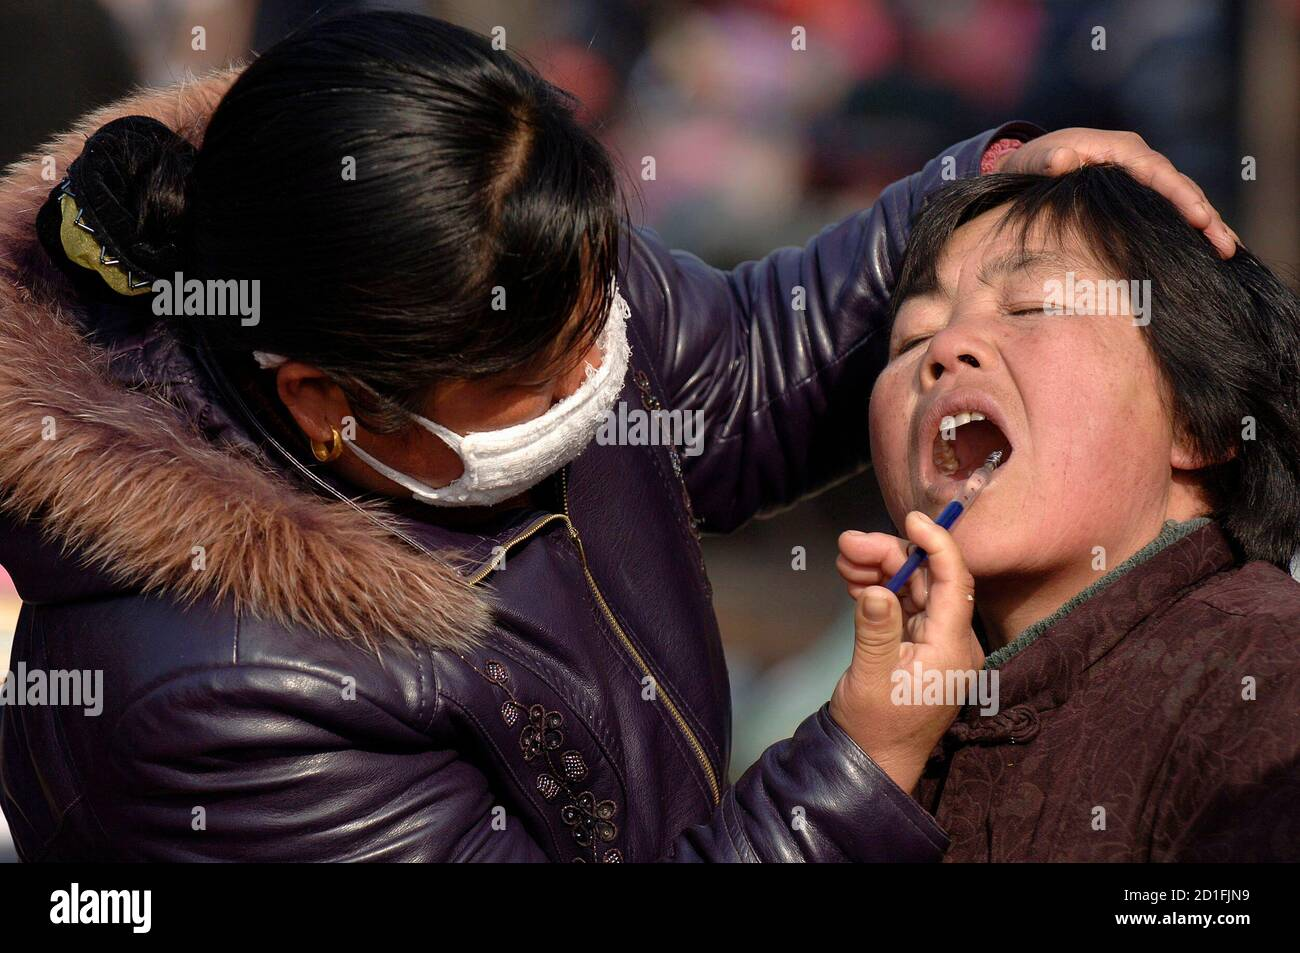 Anaesthetic Injection Banque d'image et photos   Alamy